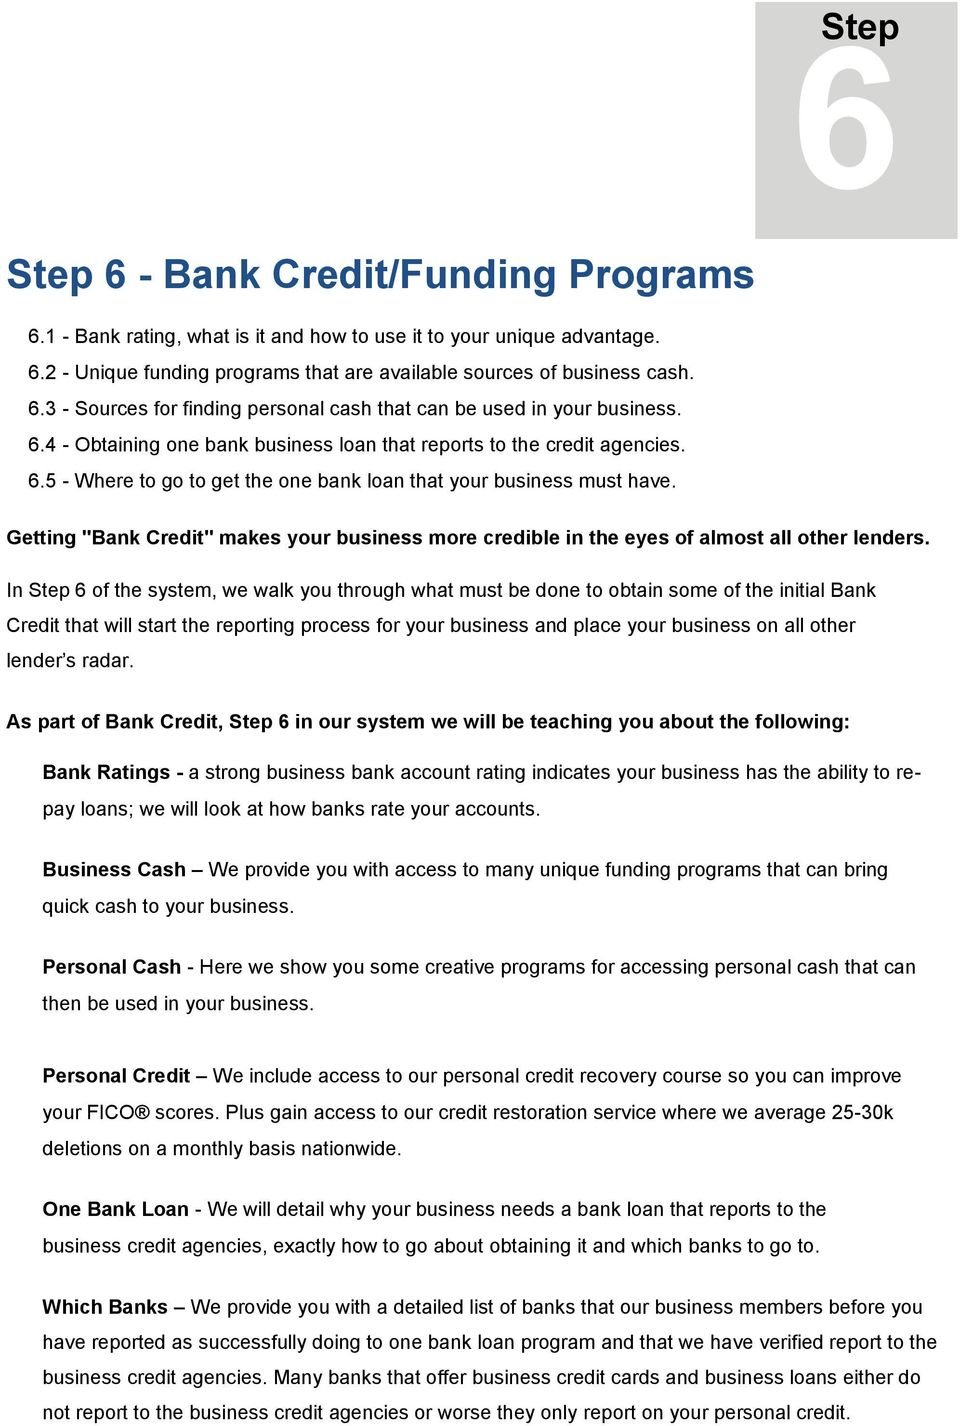 "Getting ""Bank Credit"" makes your business more credible in the eyes of almost all other lenders."